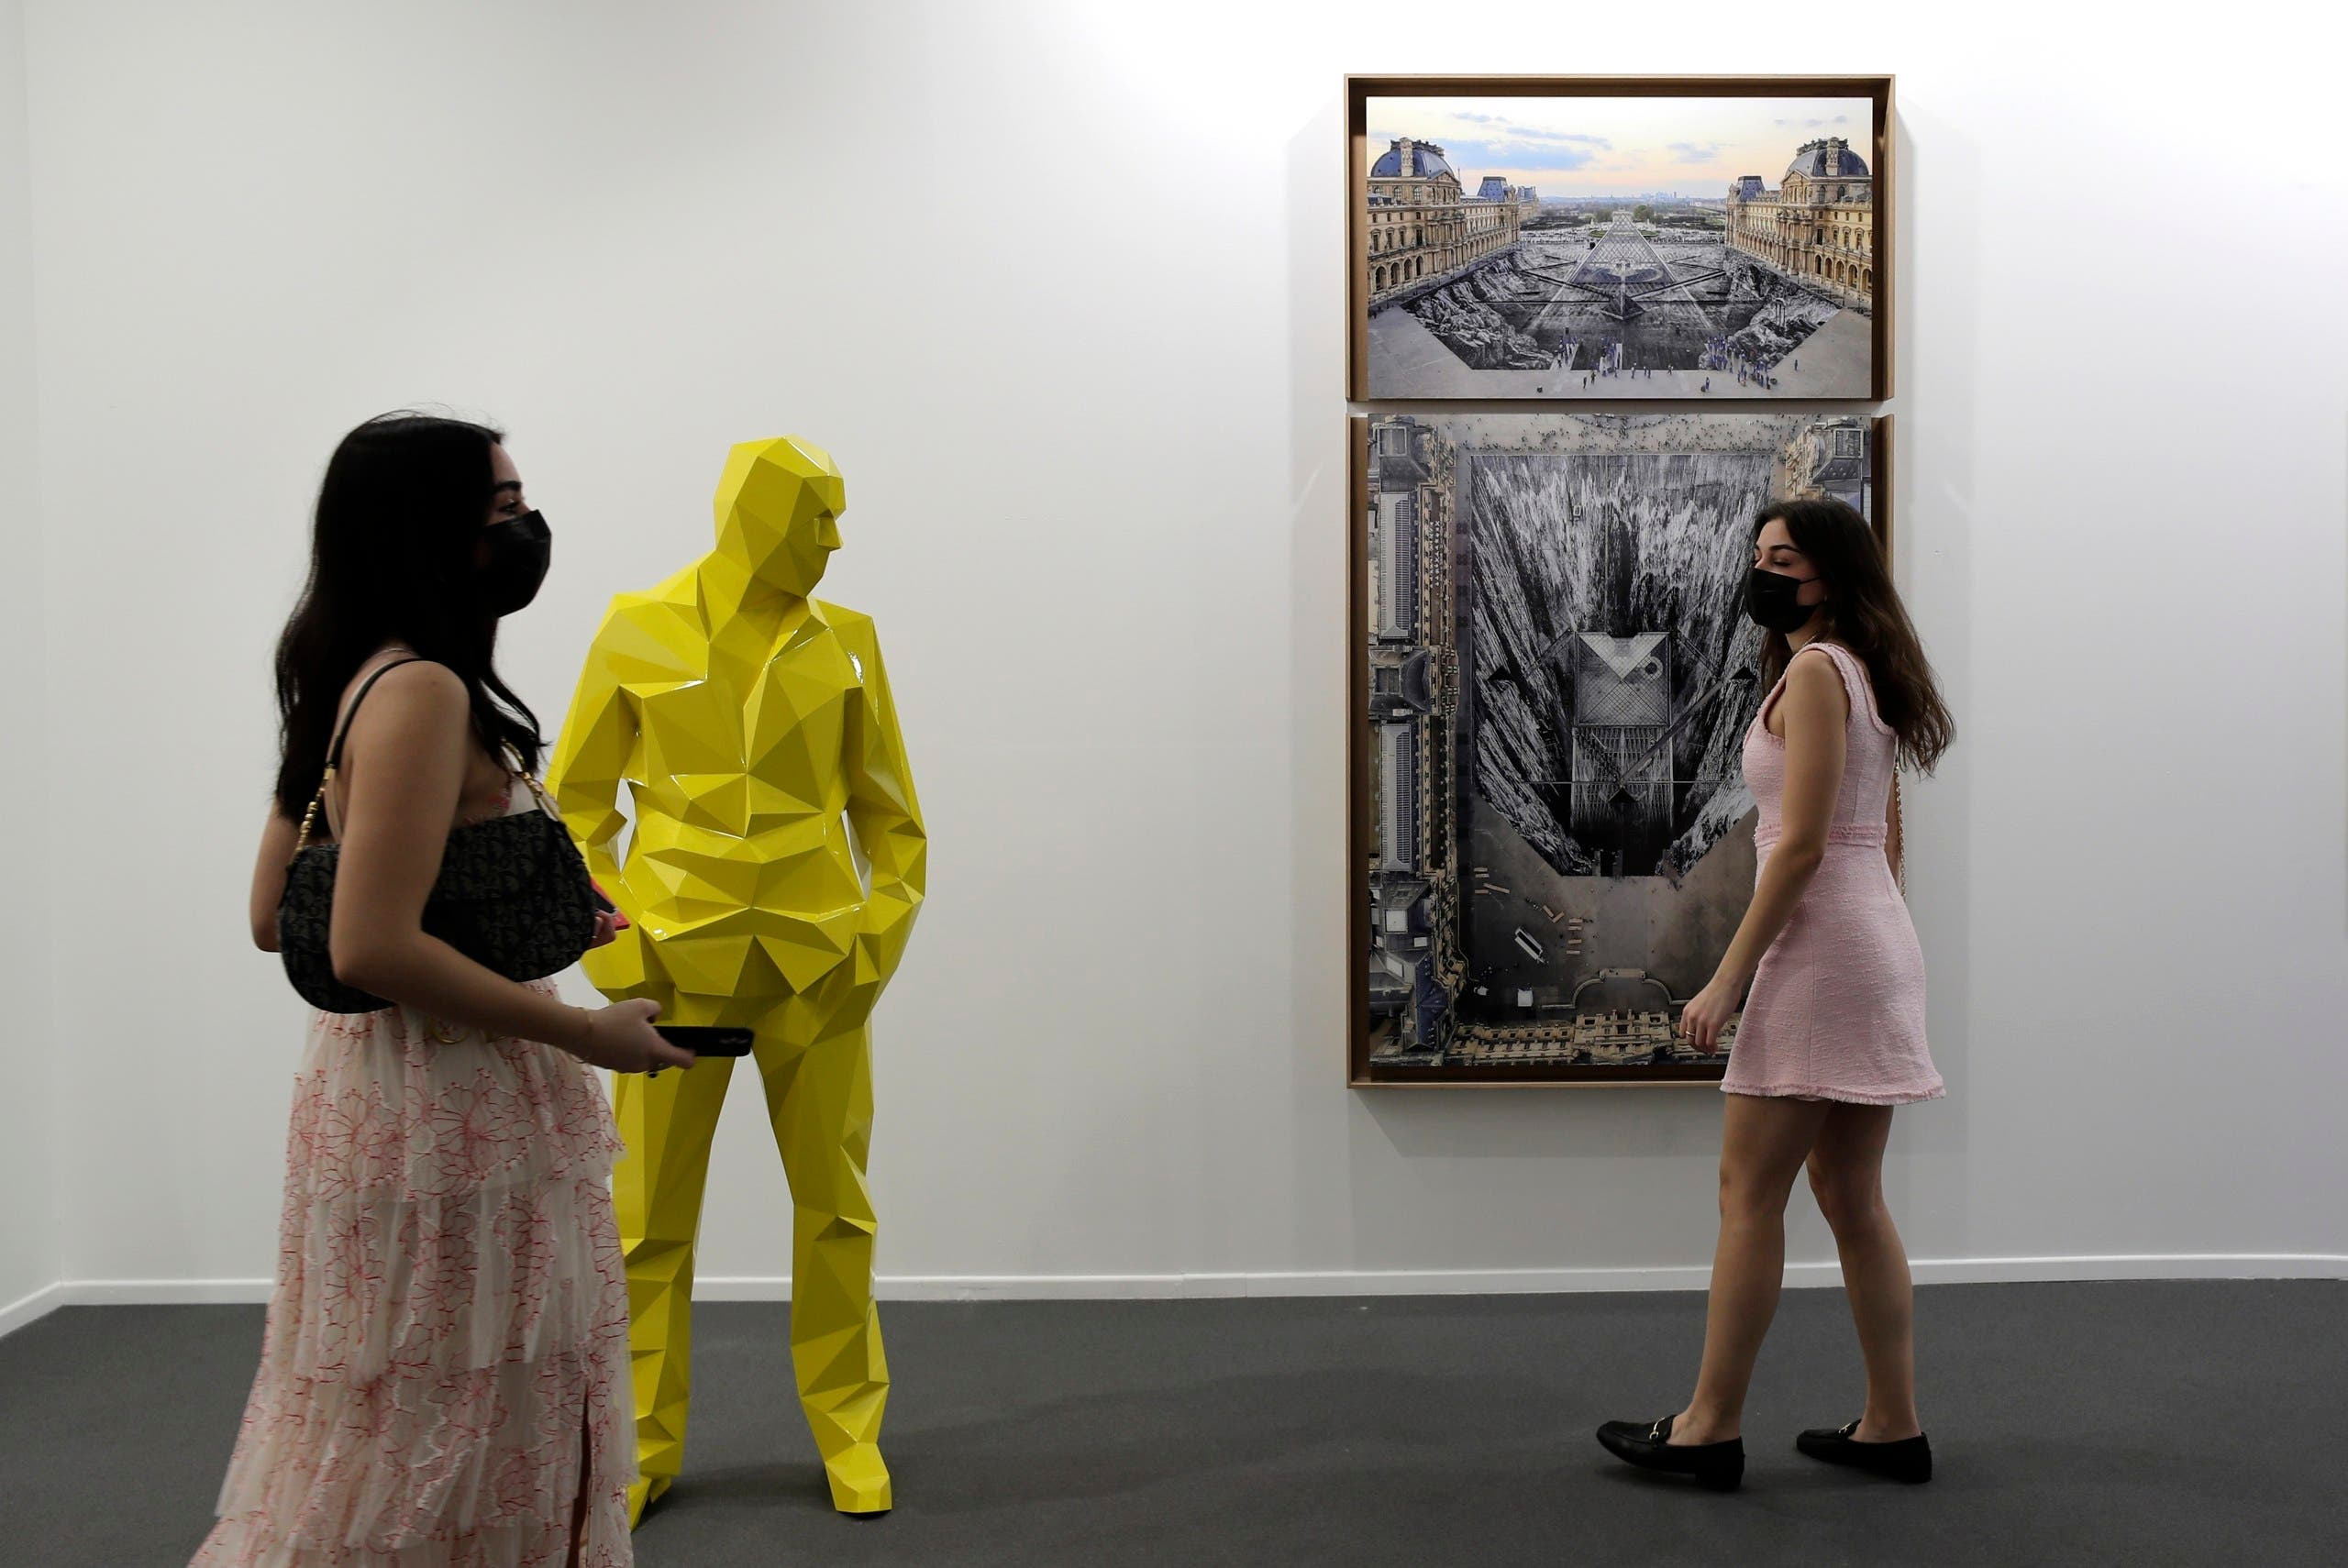 People visit Perrotin gallery of the 14th edition of Art Dubai at Dubai International Financial Centre, DIFC, which features 50 galleries from 31 countries with a focus on modern and contemporary art, in Dubai, United Arab Emirates, Tuesday, March 30, 2021. (File photo: AP))